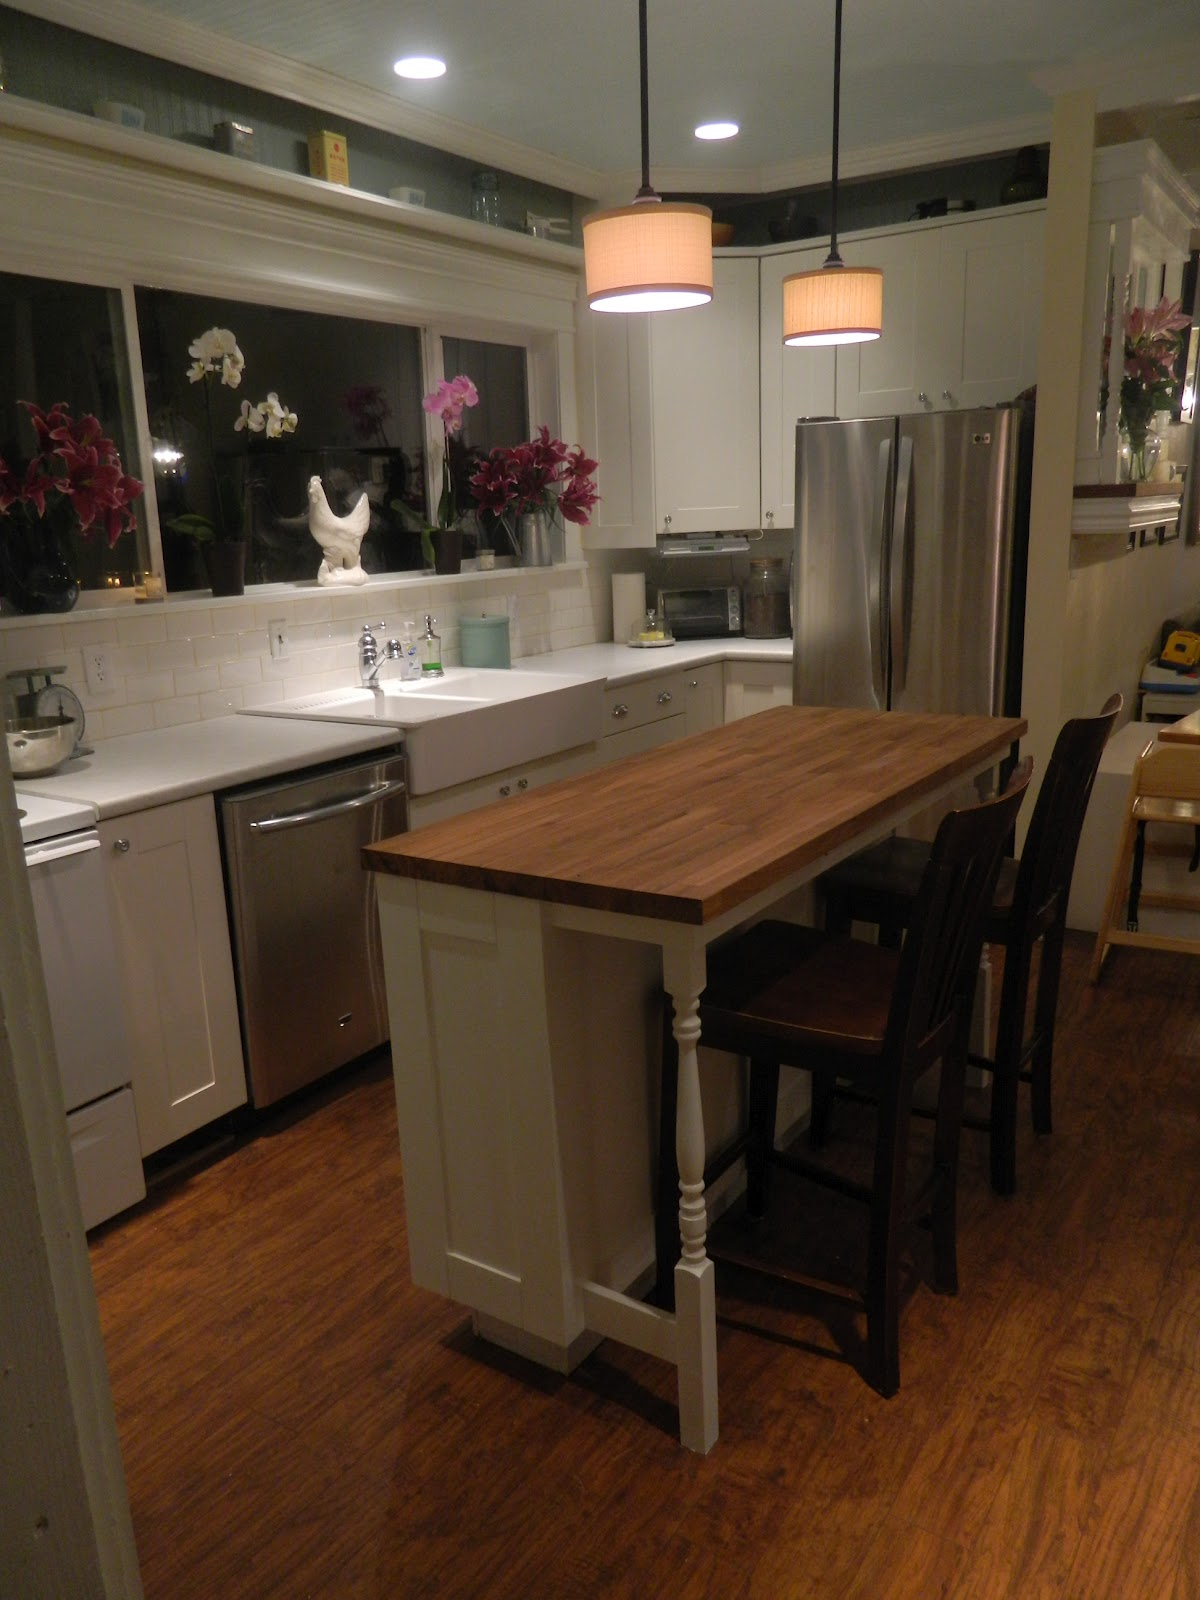 Raising The Rhyne Brine Kitchen Remodel